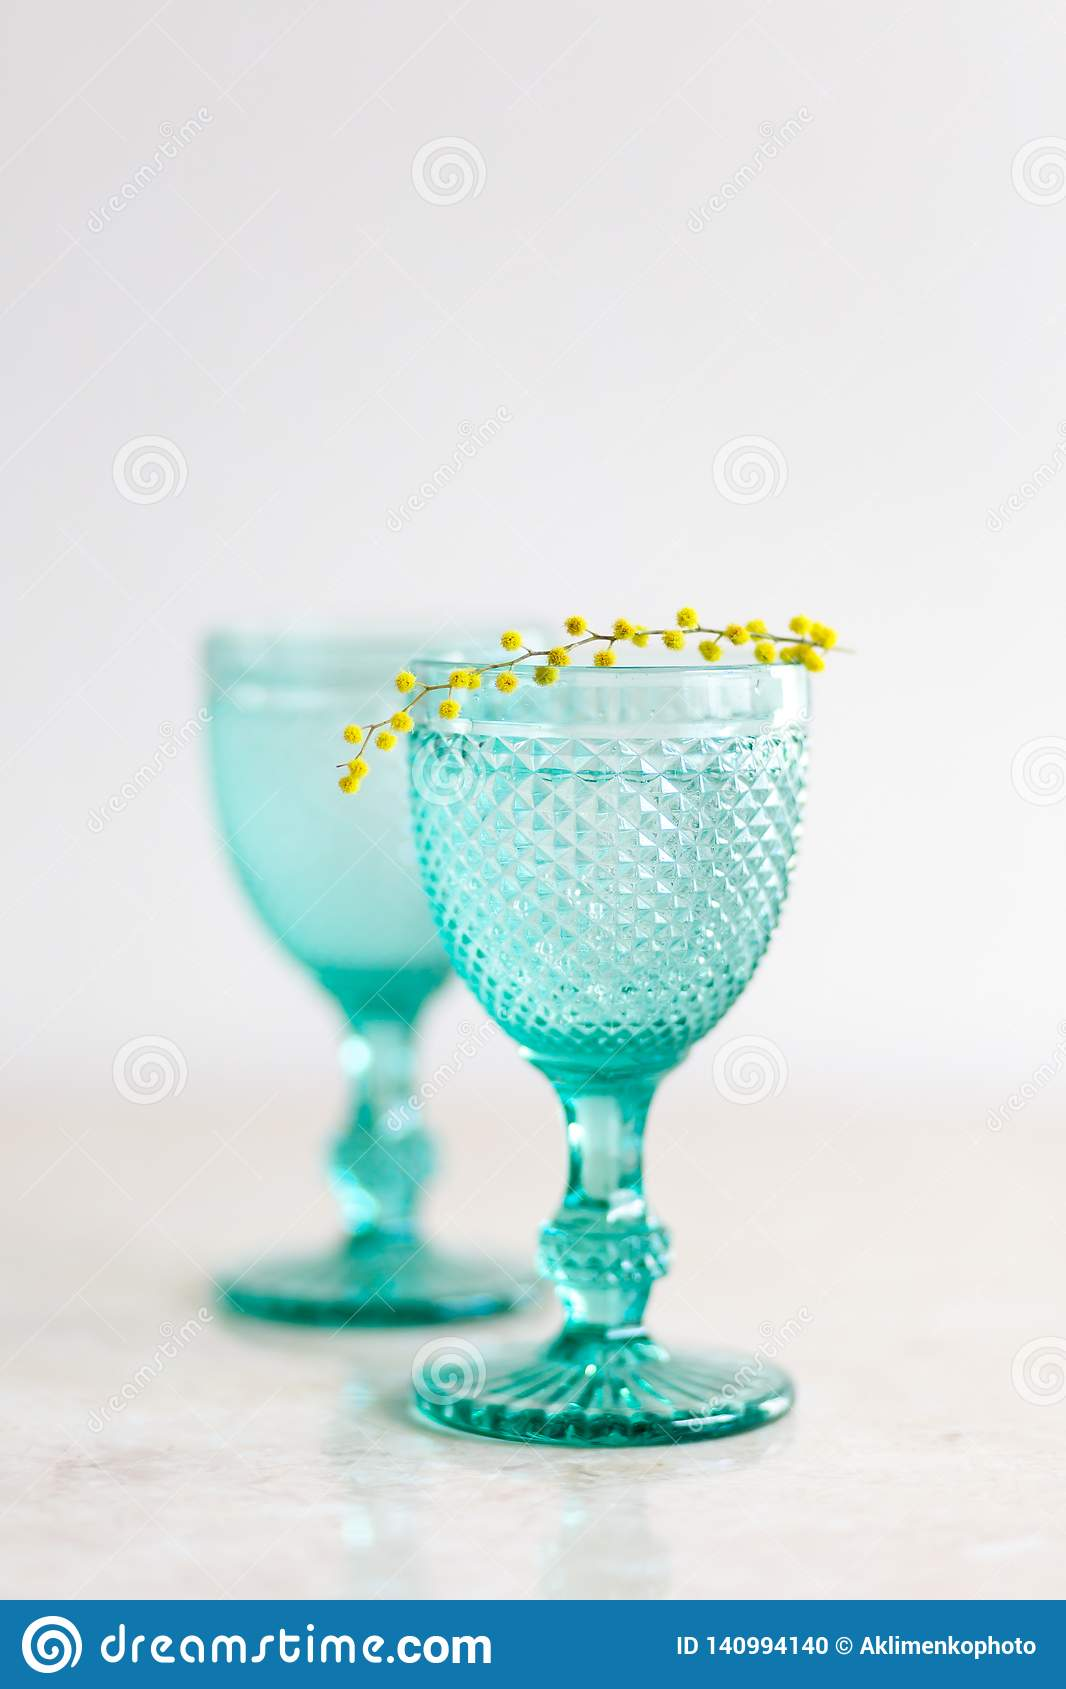 Blue Vintage Goblets and yellow mimosa flowers. Wineglasses on whight background